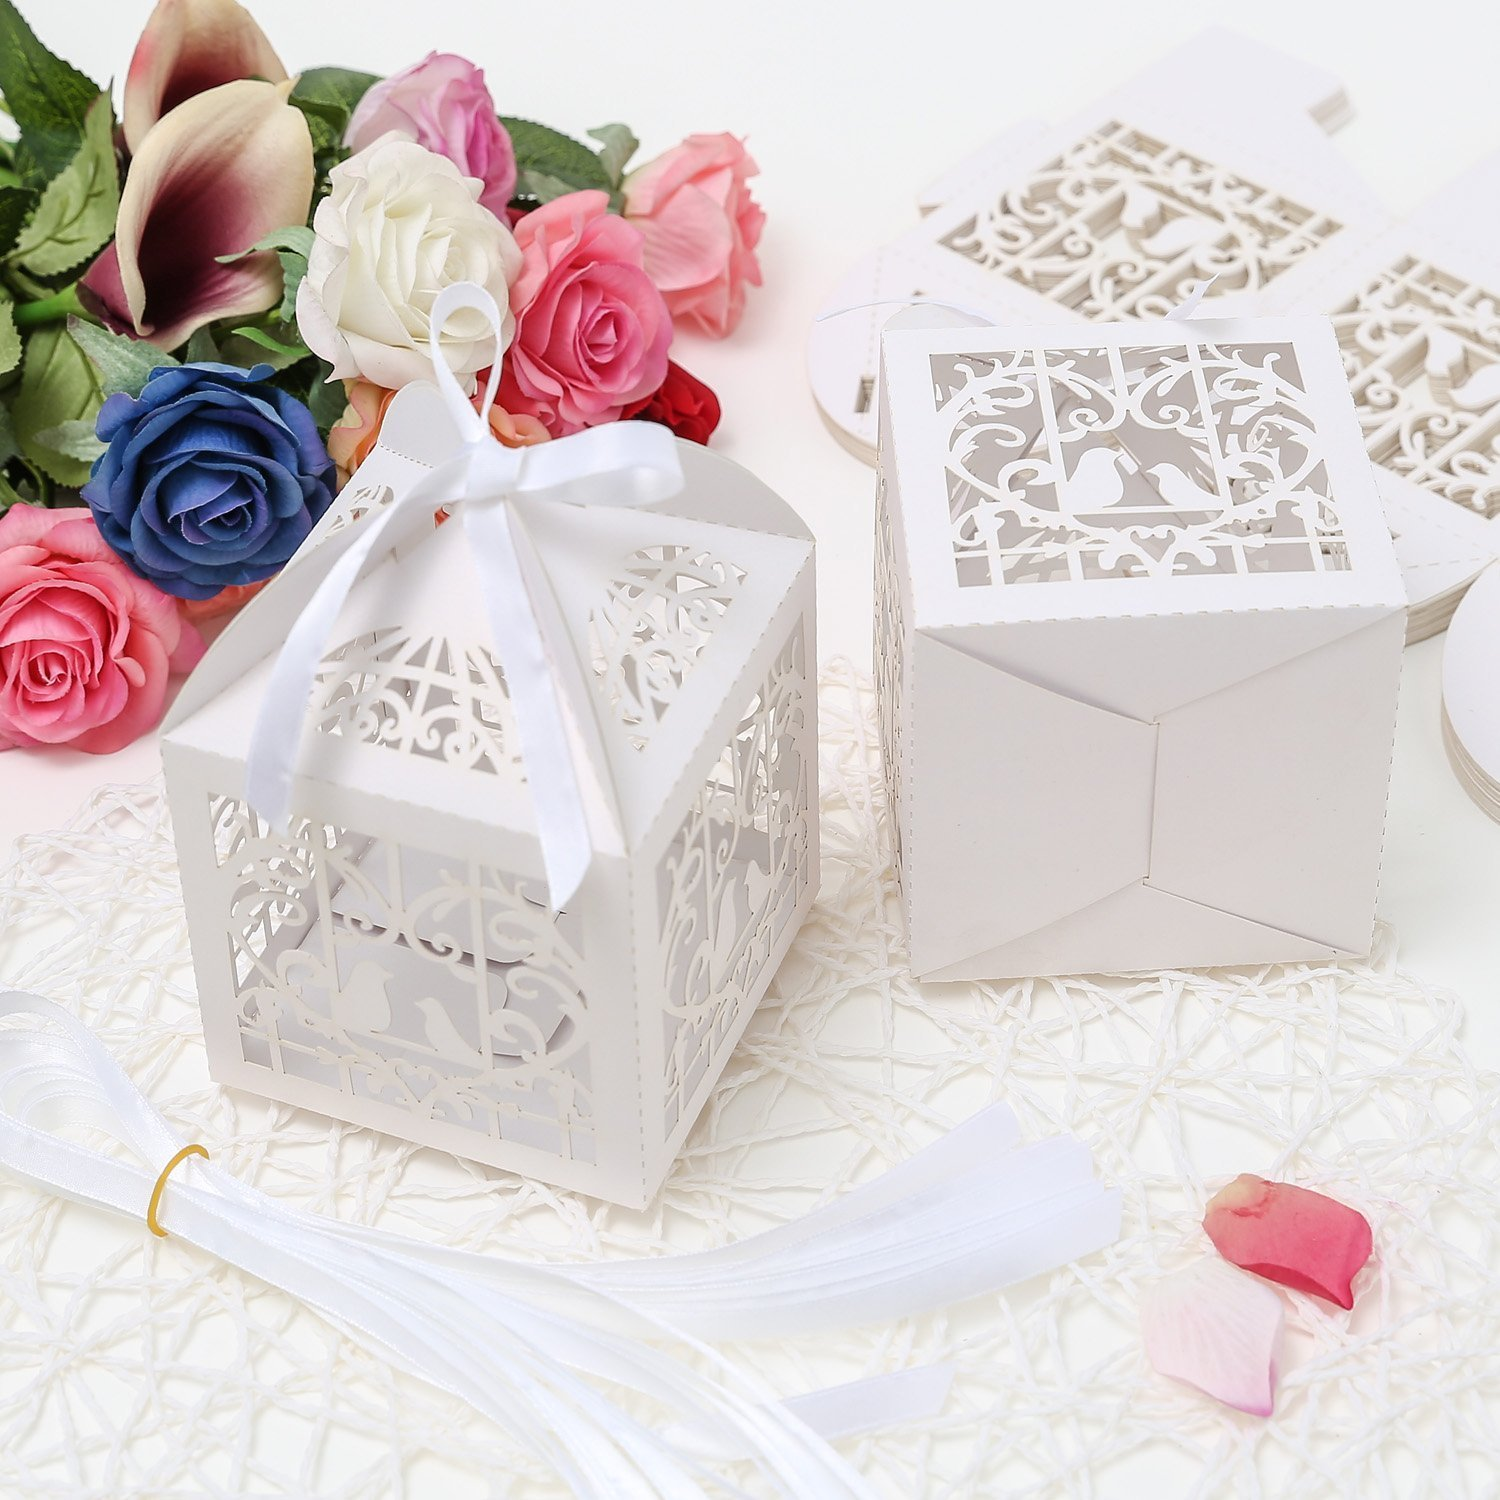 Amazon.com: PONATIA 25Pcs/Lot 4 x 4 inches Laser Cut Pearl Paper ...